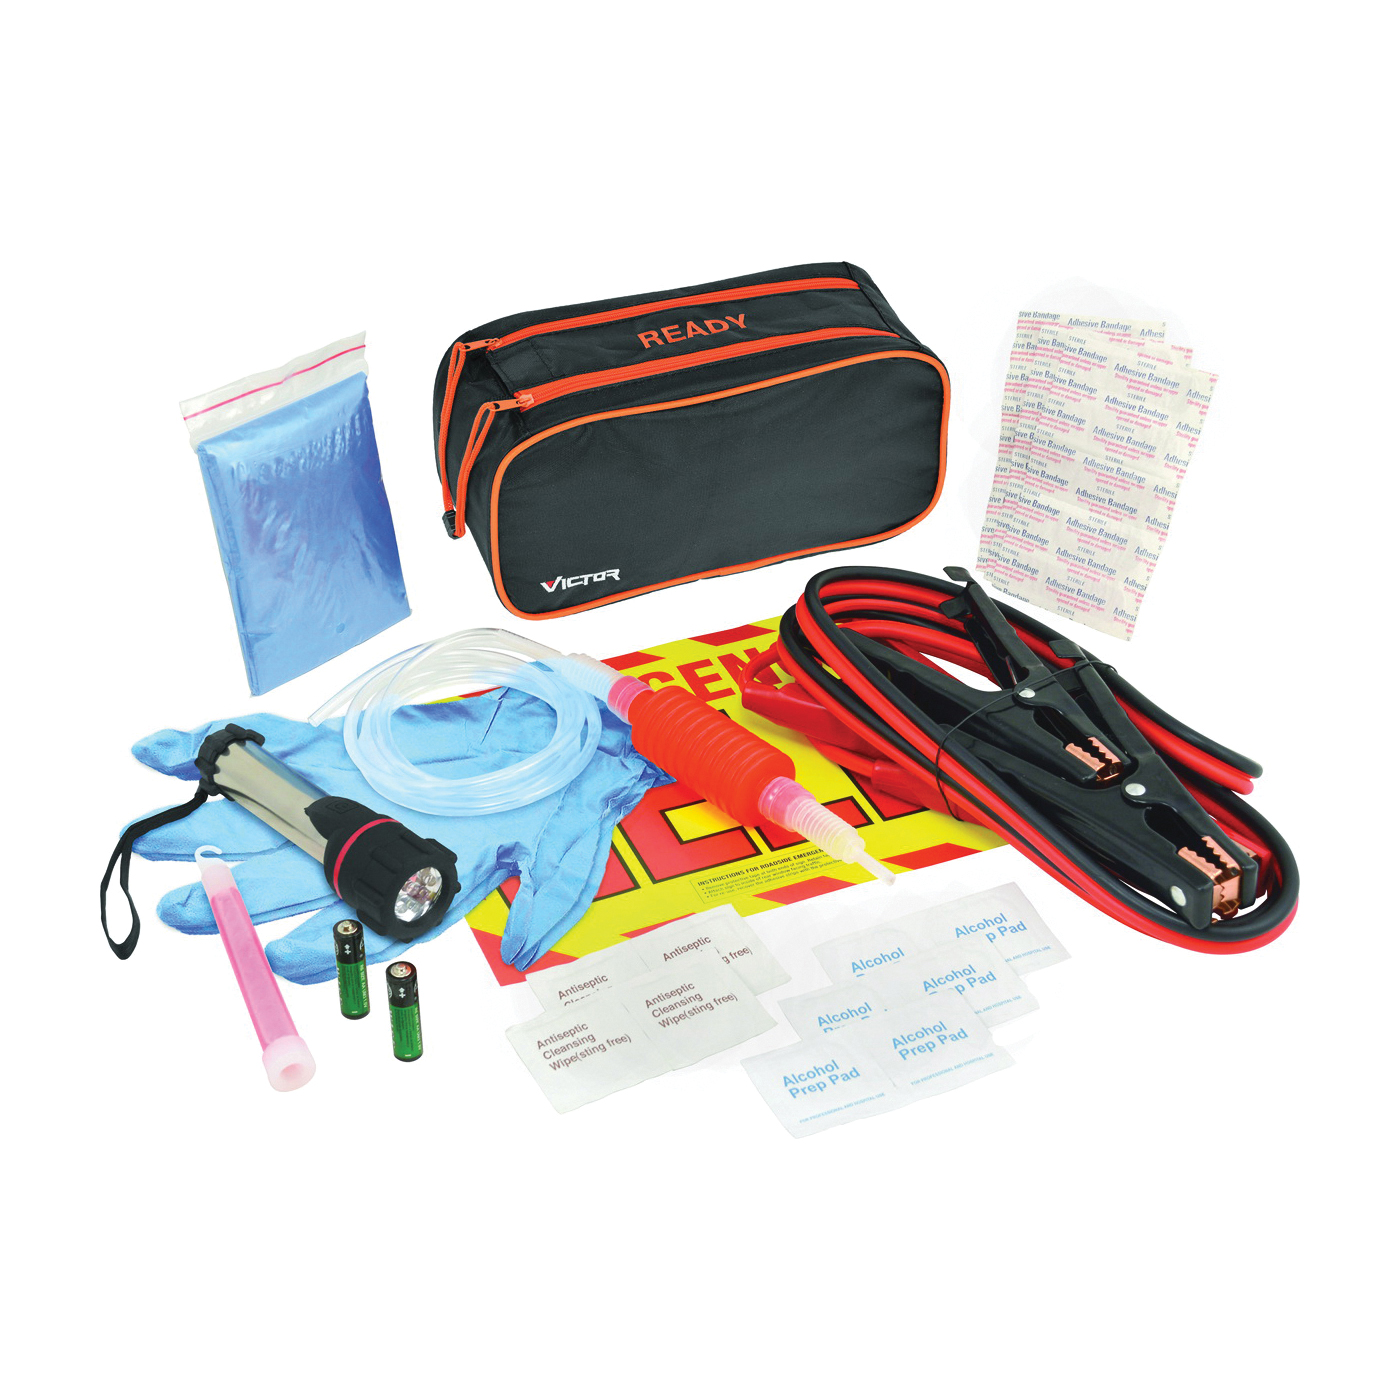 Picture of GENUINE VICTOR 65101-8 Roadside Emergency Kit, 36 -Piece